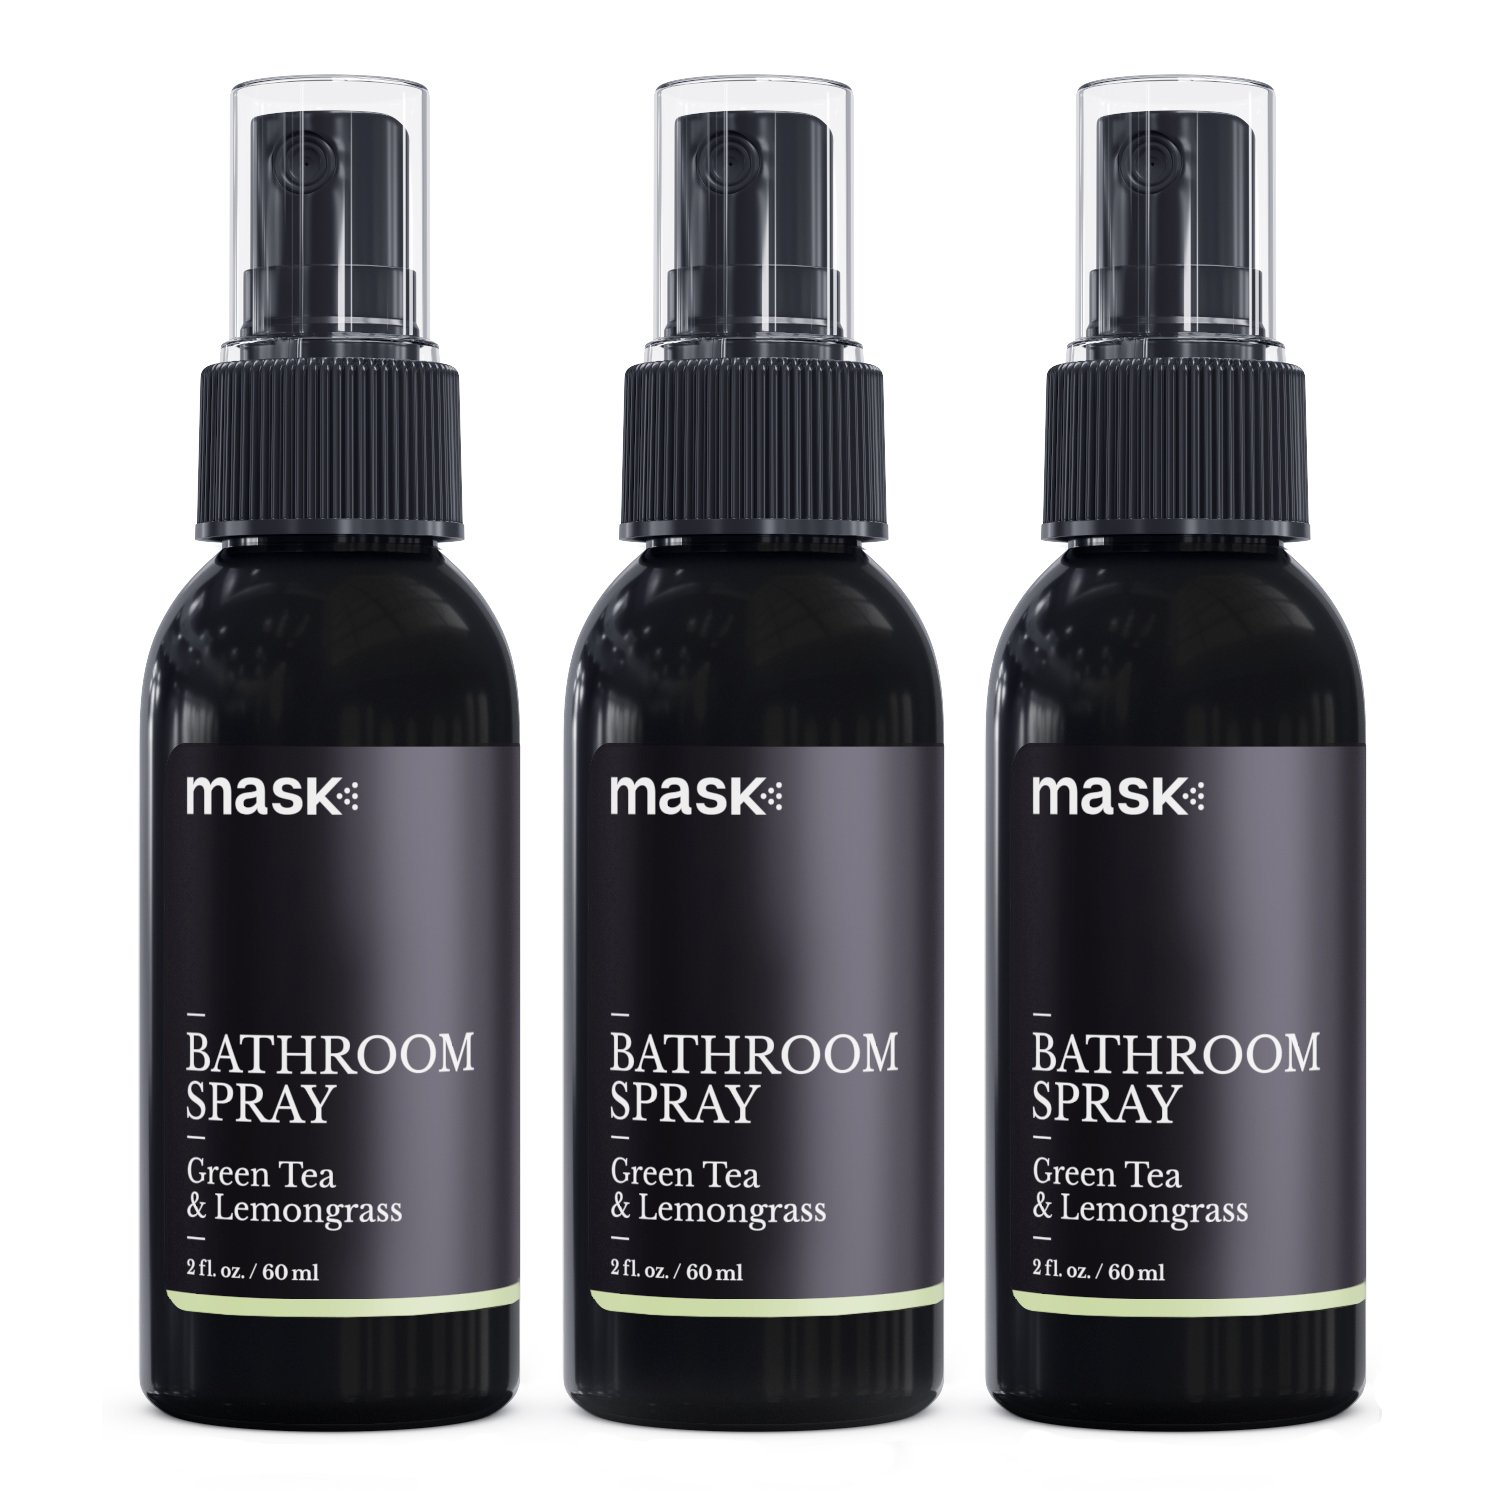 Mask Bathroom Spray 2oz (3 Pack), Green Tea & Lemongrass Fragrance, Toilet Spray, Before You Go Deodorizer, Best Value Air Freshener Poo Poop Spray, Perfect for Travel!